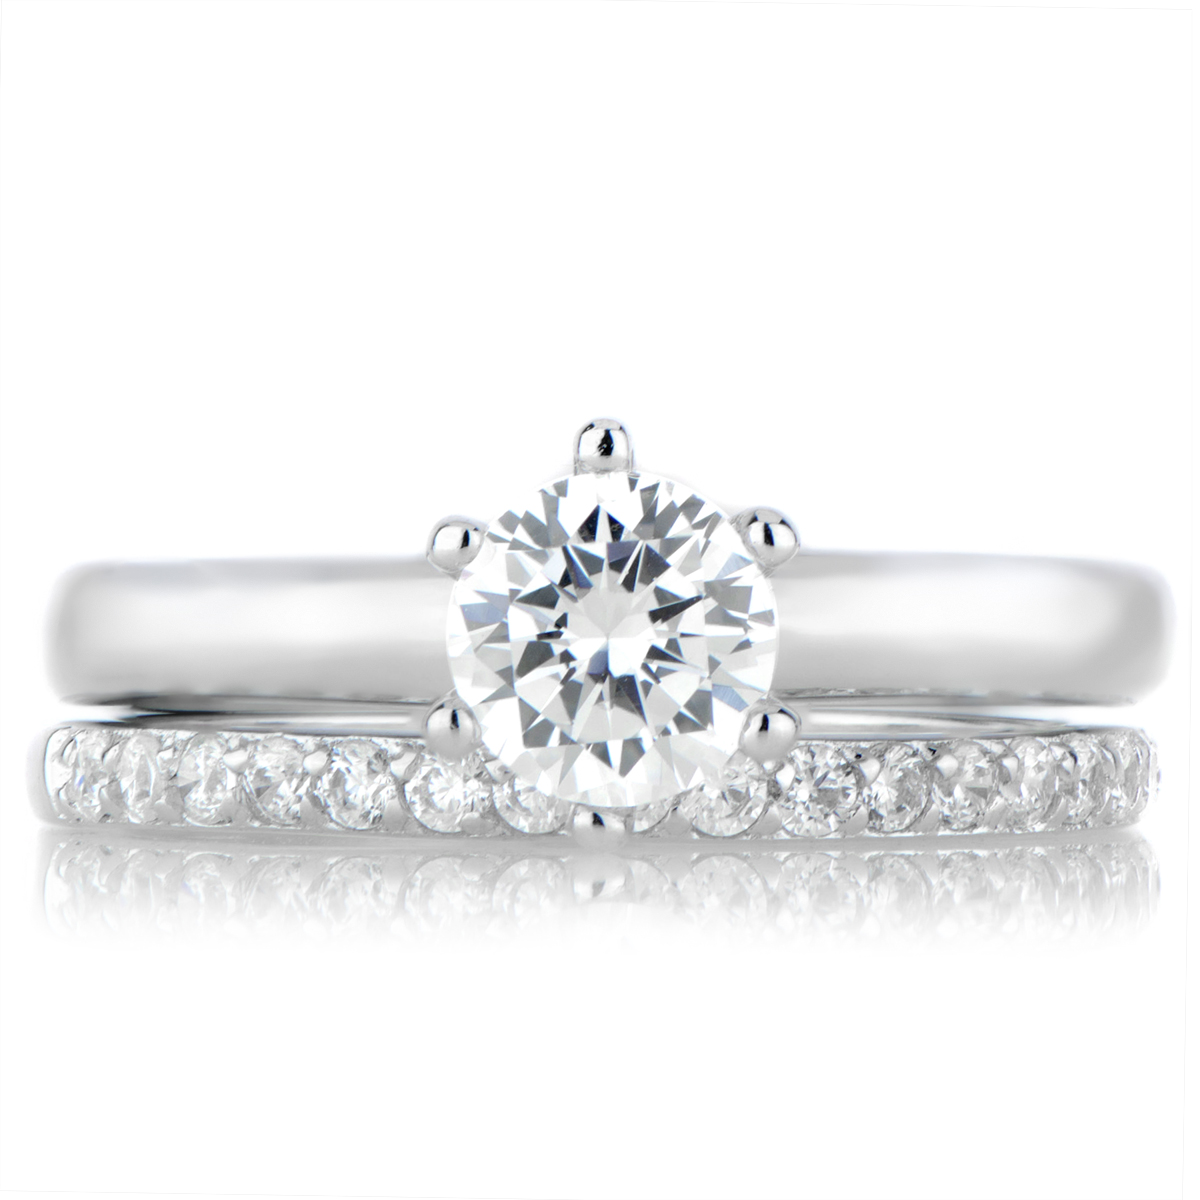 roll off image to close zoom window - Wedding Rings Set